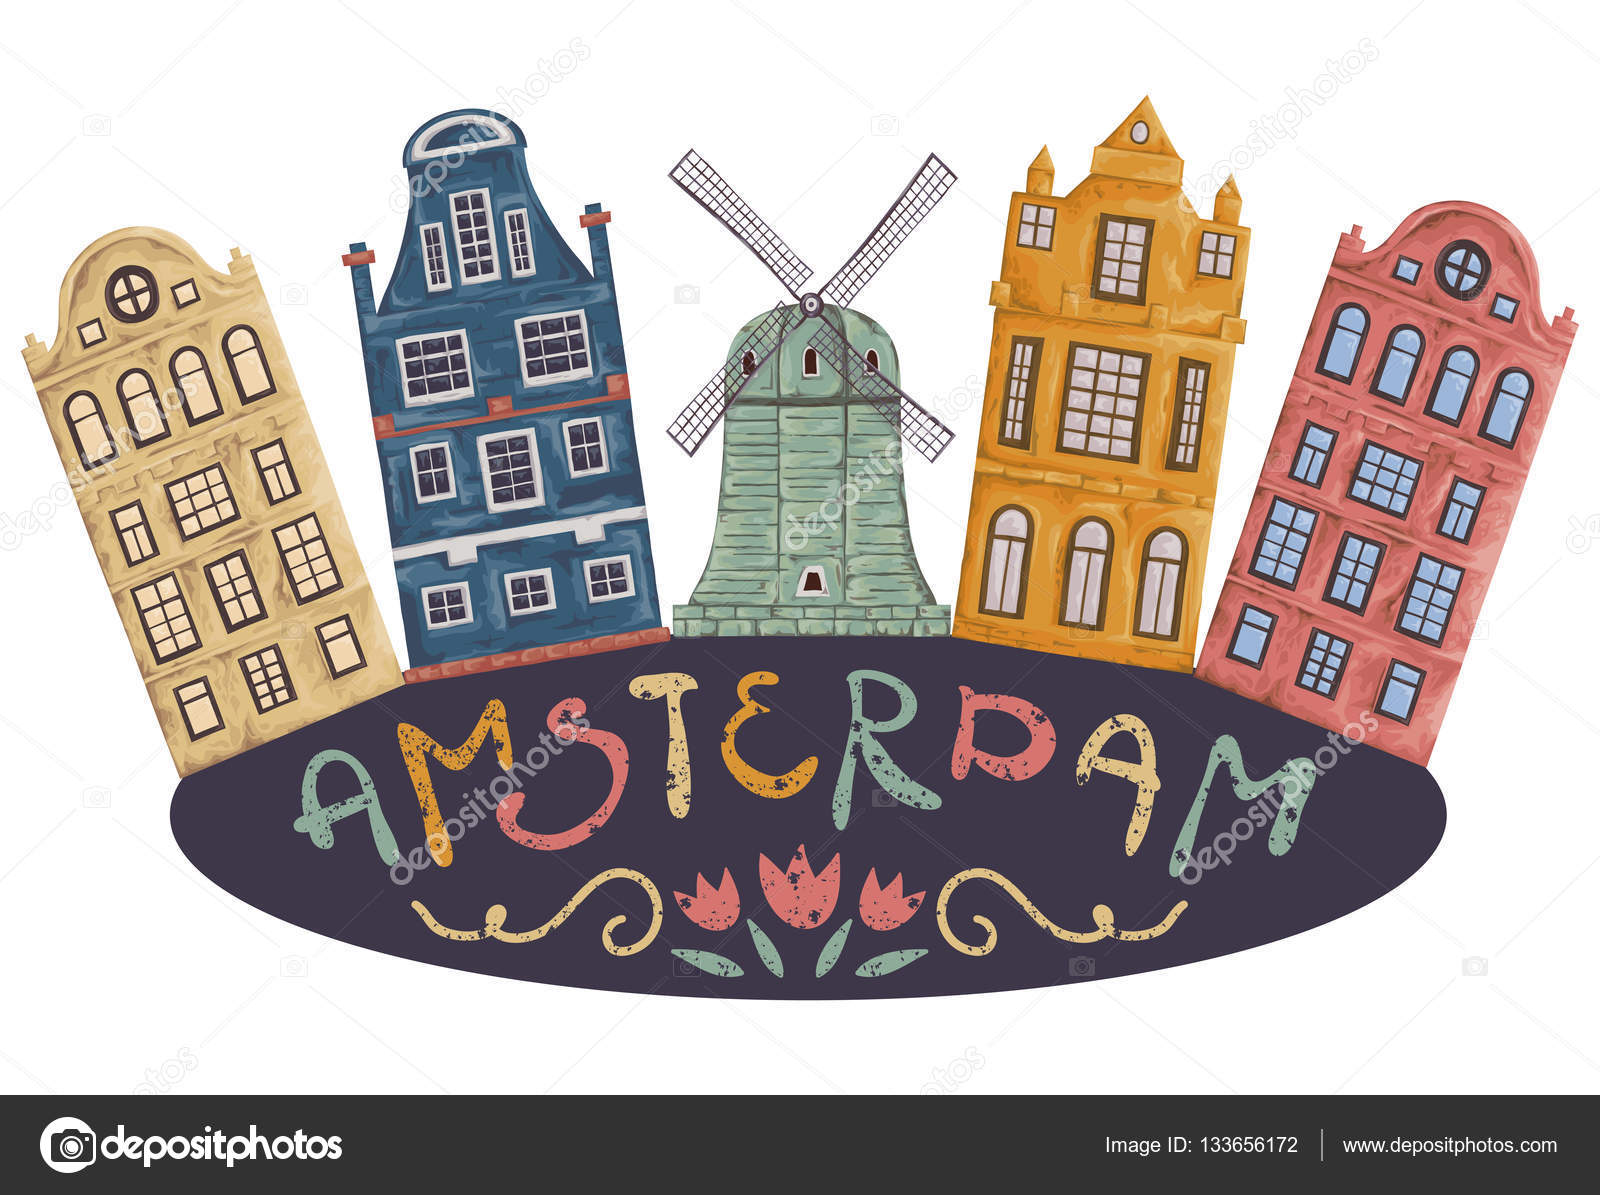 Most Colorful Cities Around The World moreover Belgium Impressive Cultural Treasure moreover Amsterdam Architecture as well herland Tourist Attractions In besides Stock Illustration Amsterdam Old Historic Buildings And. on amsterdam buildings